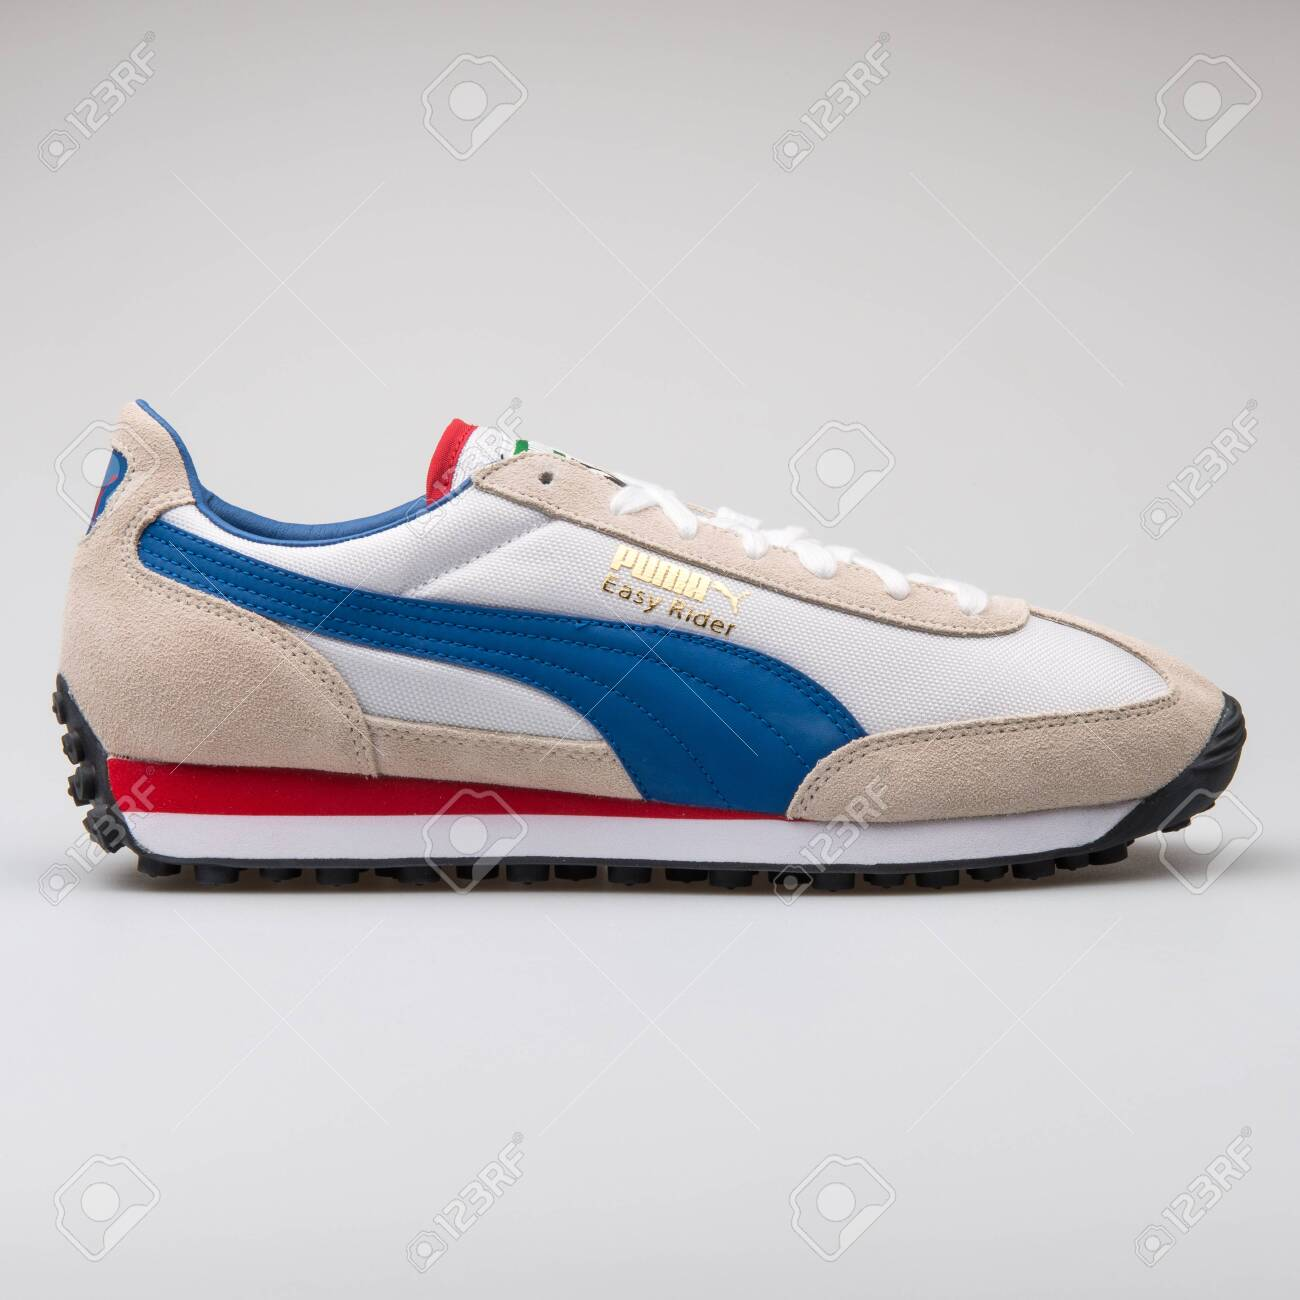 VIENNA, AUSTRIA - AUGUST 7, 2017: Puma Easy Rider white, blue..